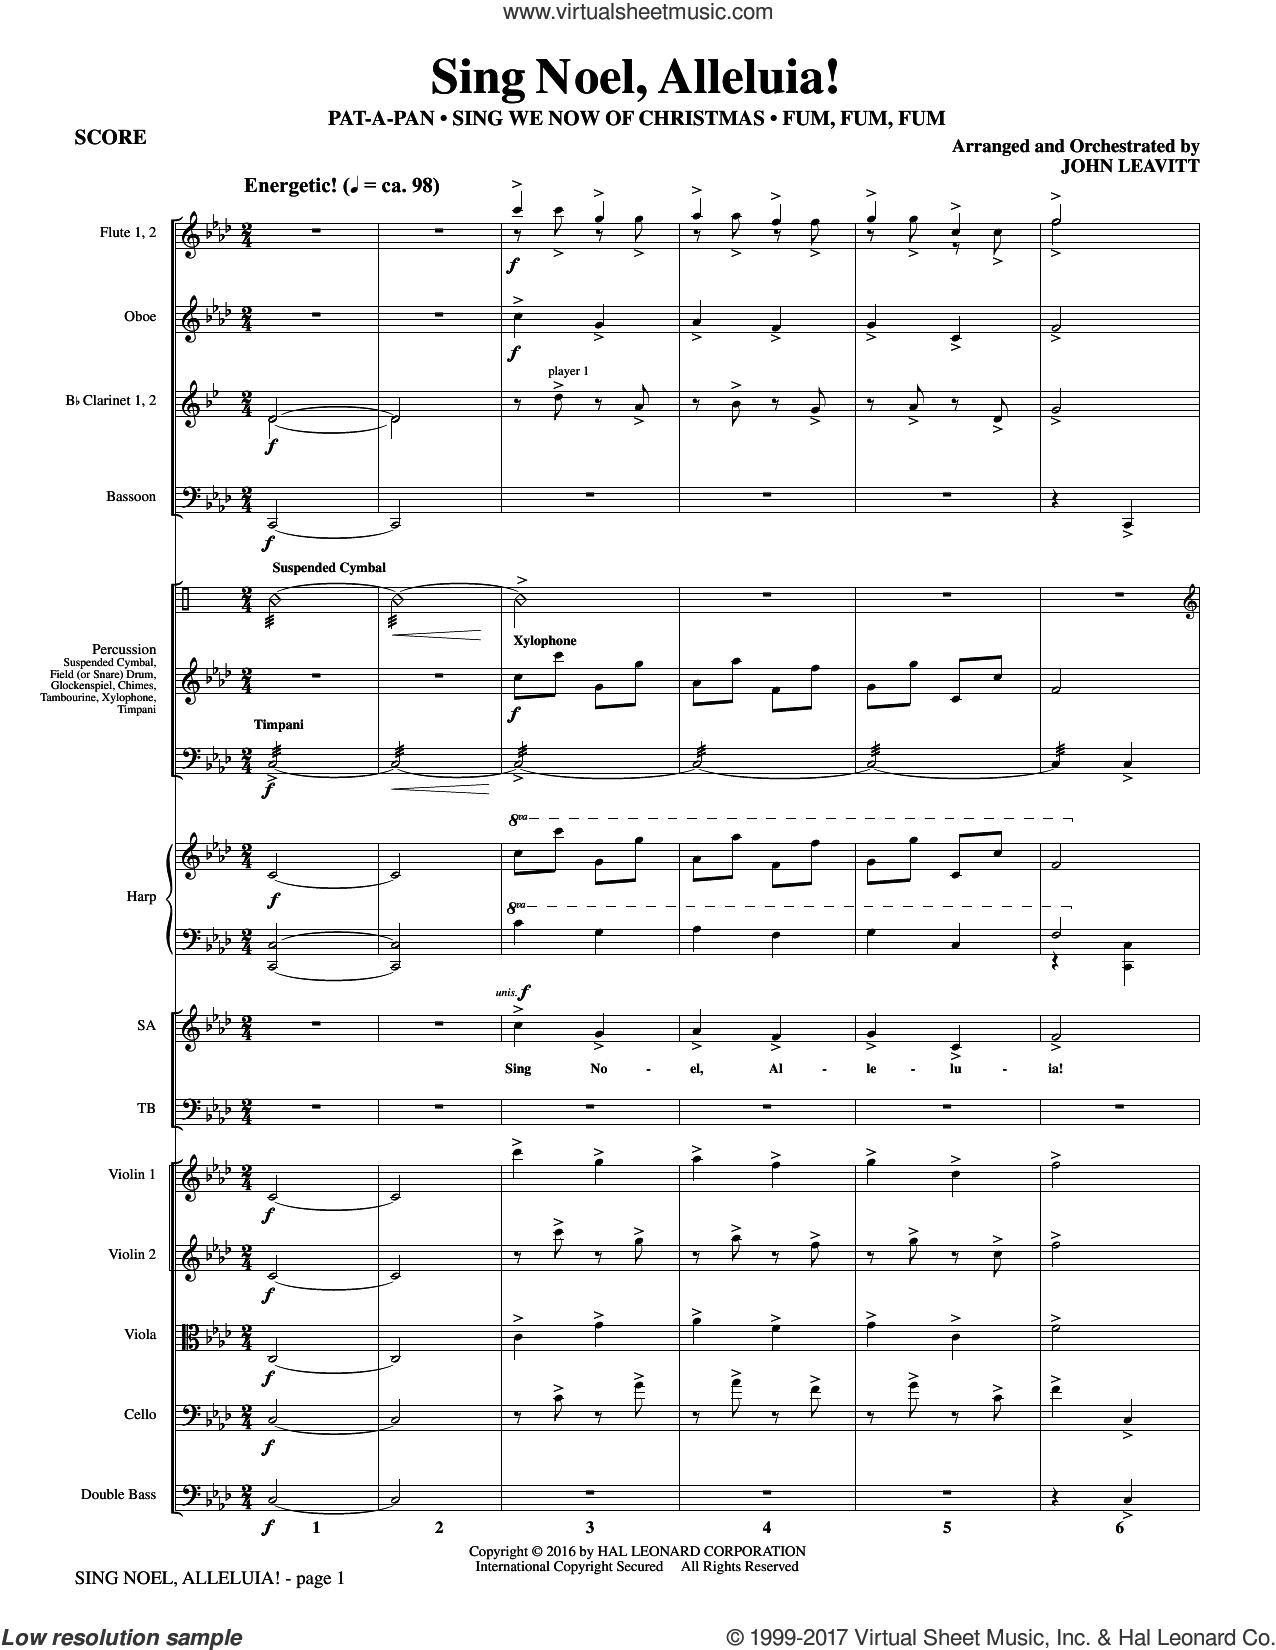 Sing Noel, Alleluia! (COMPLETE) sheet music for orchestra/band by John Leavitt, Christmas carol score, intermediate orchestra/band. Score Image Preview.